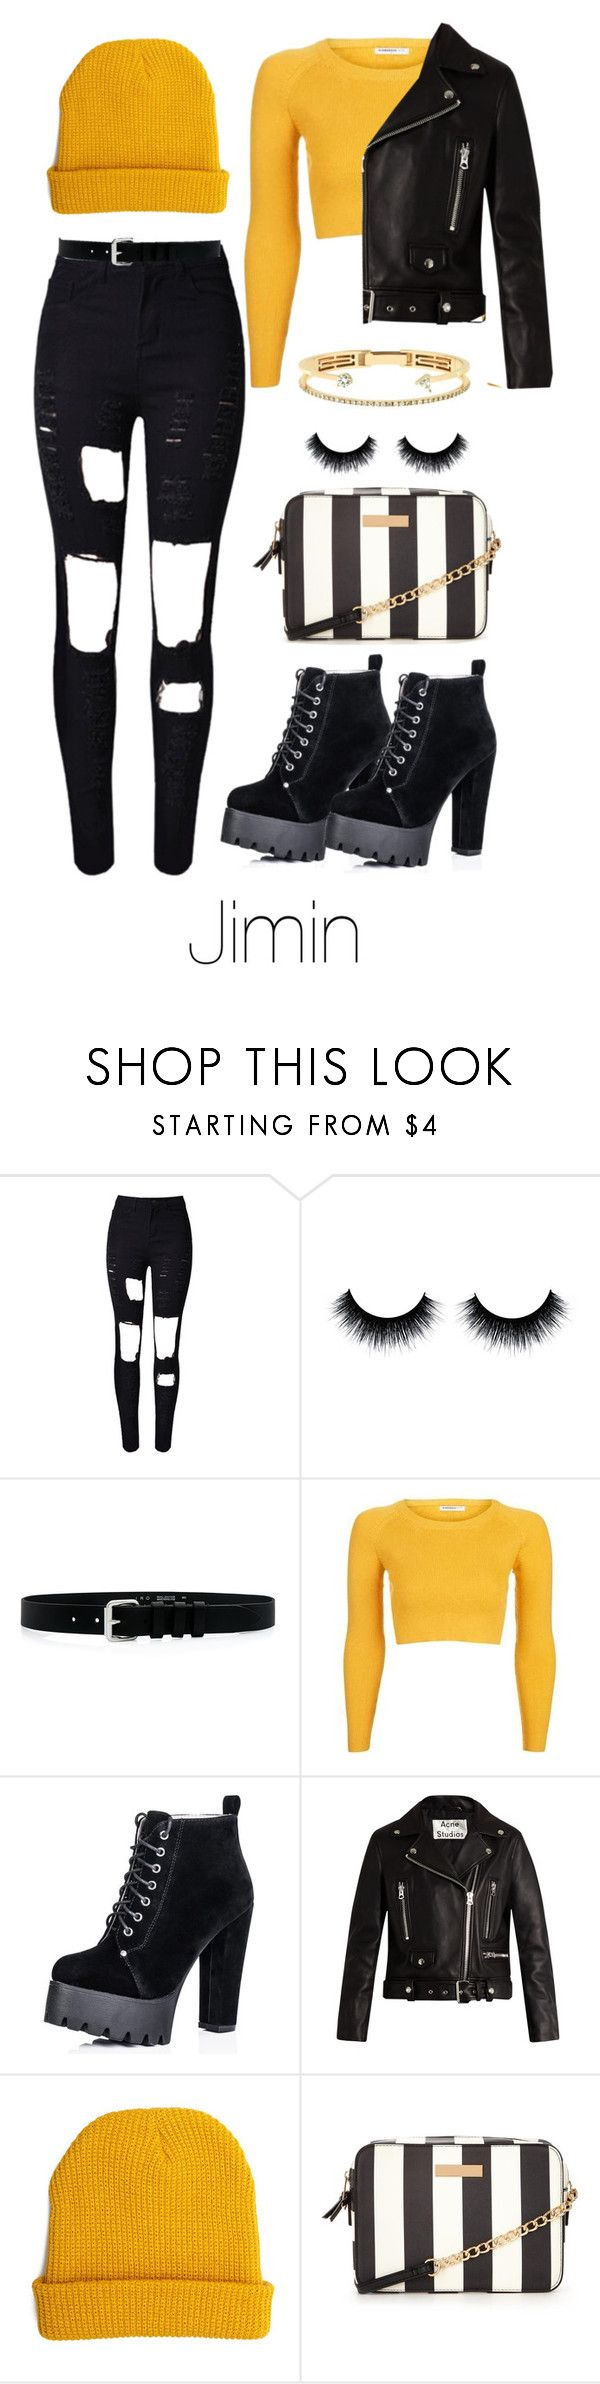 """""""Night out with Jimin 🌅✖️"""" by ari2sk ❤ liked on Polyvore featuring WithChic, IRO, Topshop, Acne Studios, 21 Men and Delfina Delettrez"""